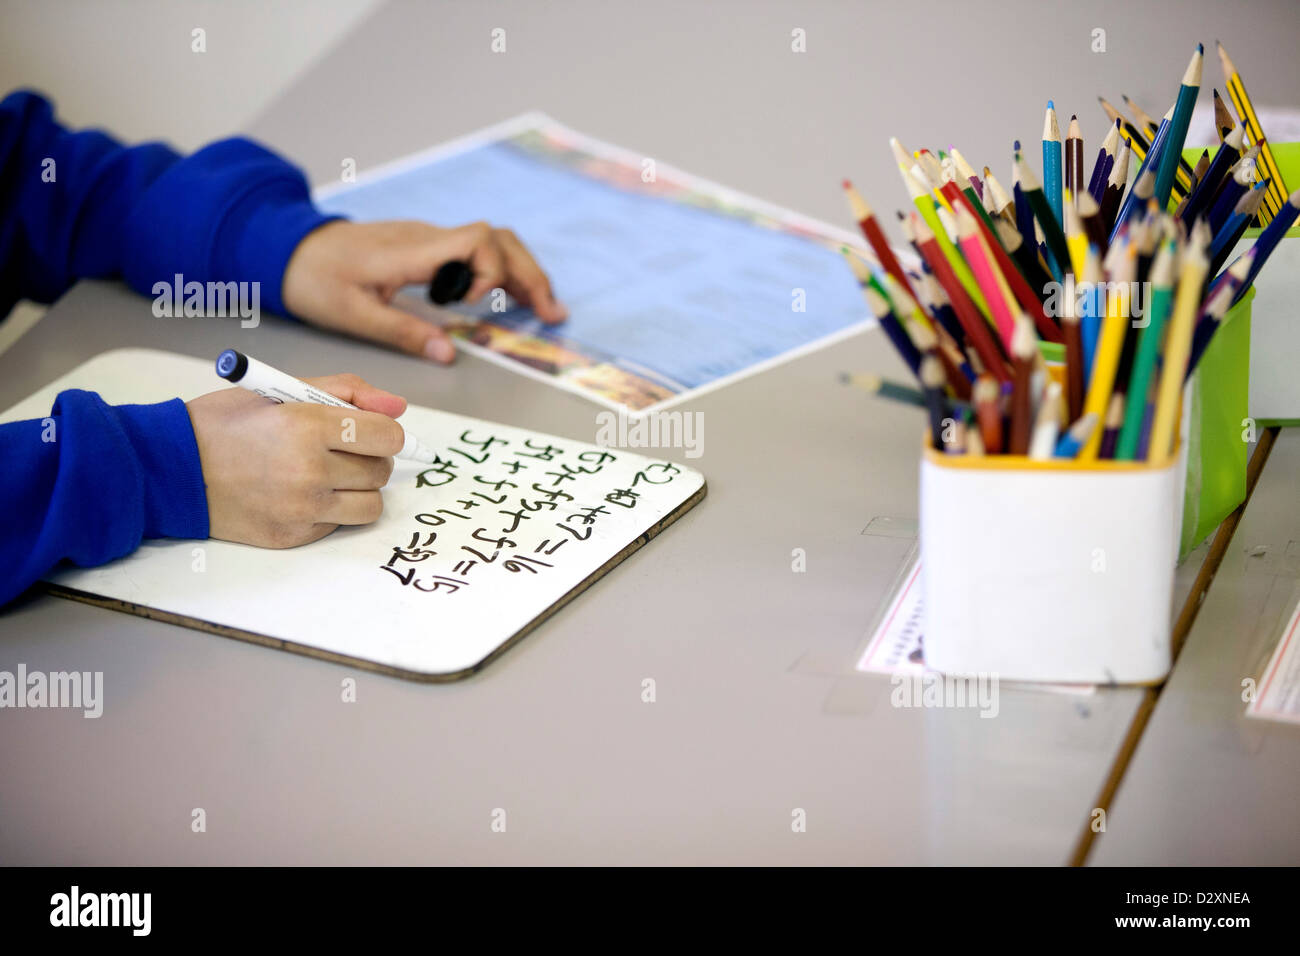 Primary School Child Writing On White Board With Marker